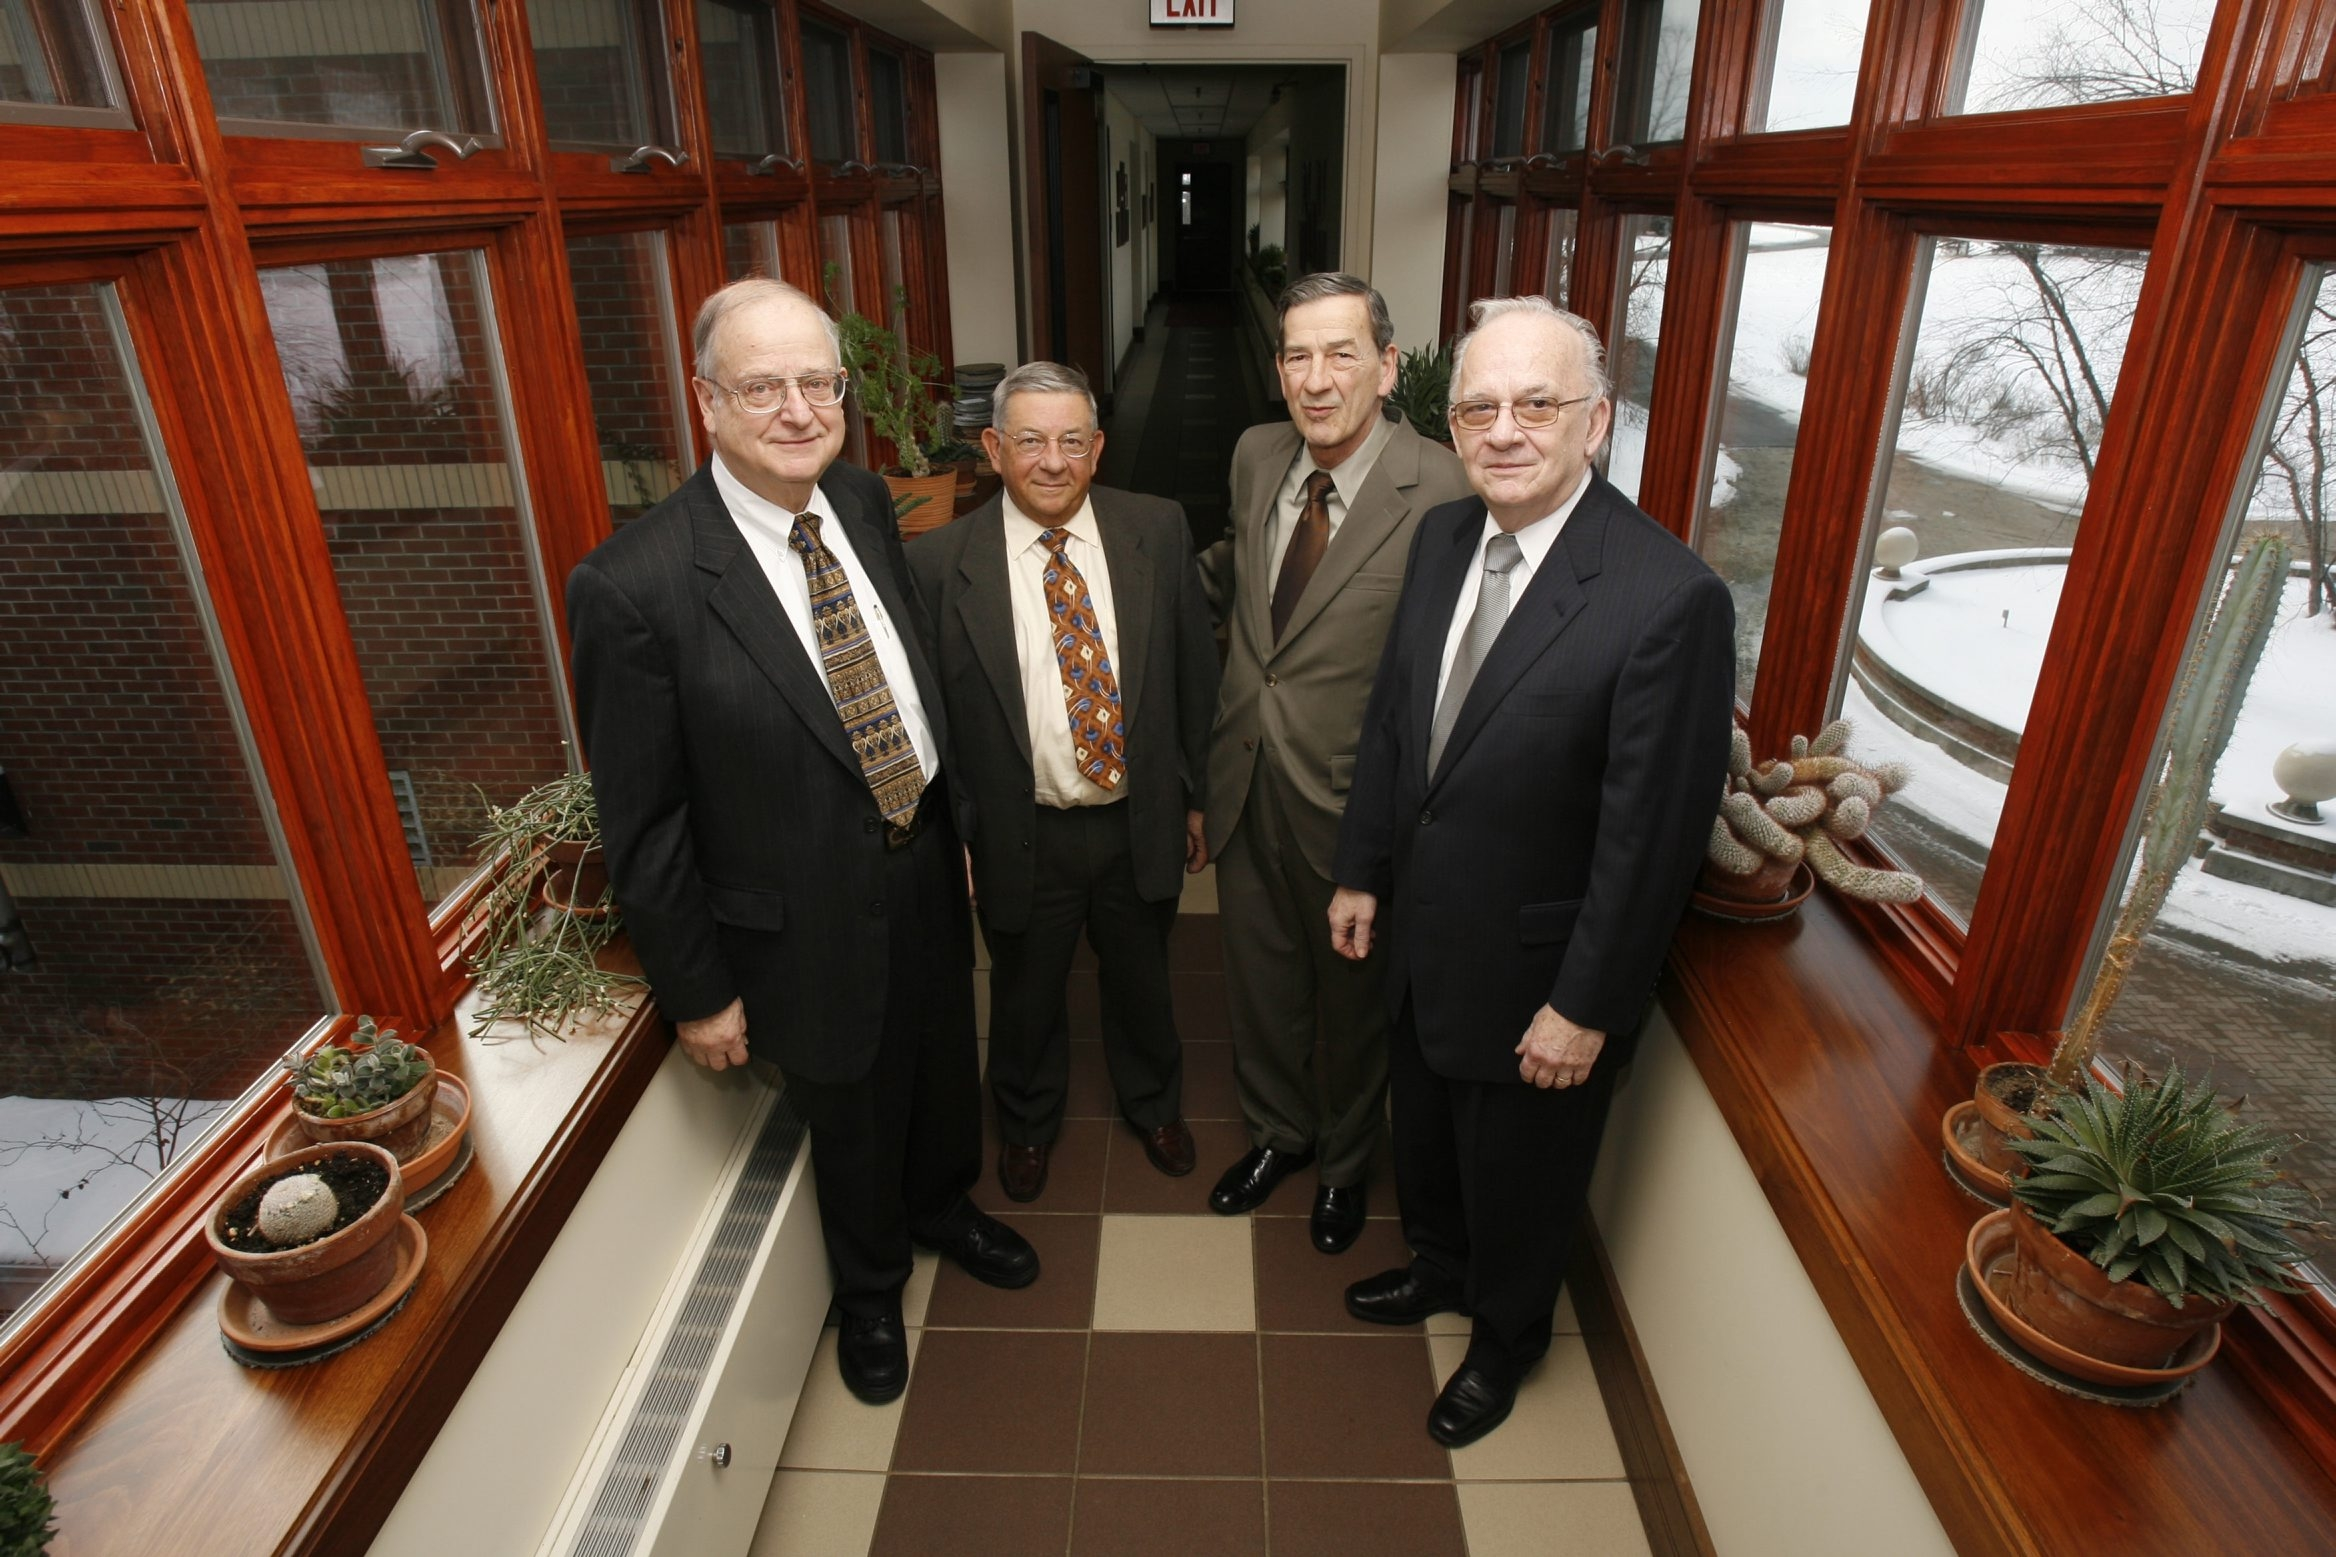 Pictured in happier times, the relationship between Ecology & Environment's four co-founders crumbled last year with the ouster of the late Gerhard J. Neumaier, left, as E&E's chairman by his longtime partners, Ronald L. Frank, Frank Silvestro and Gerald A.Q. Strobel.